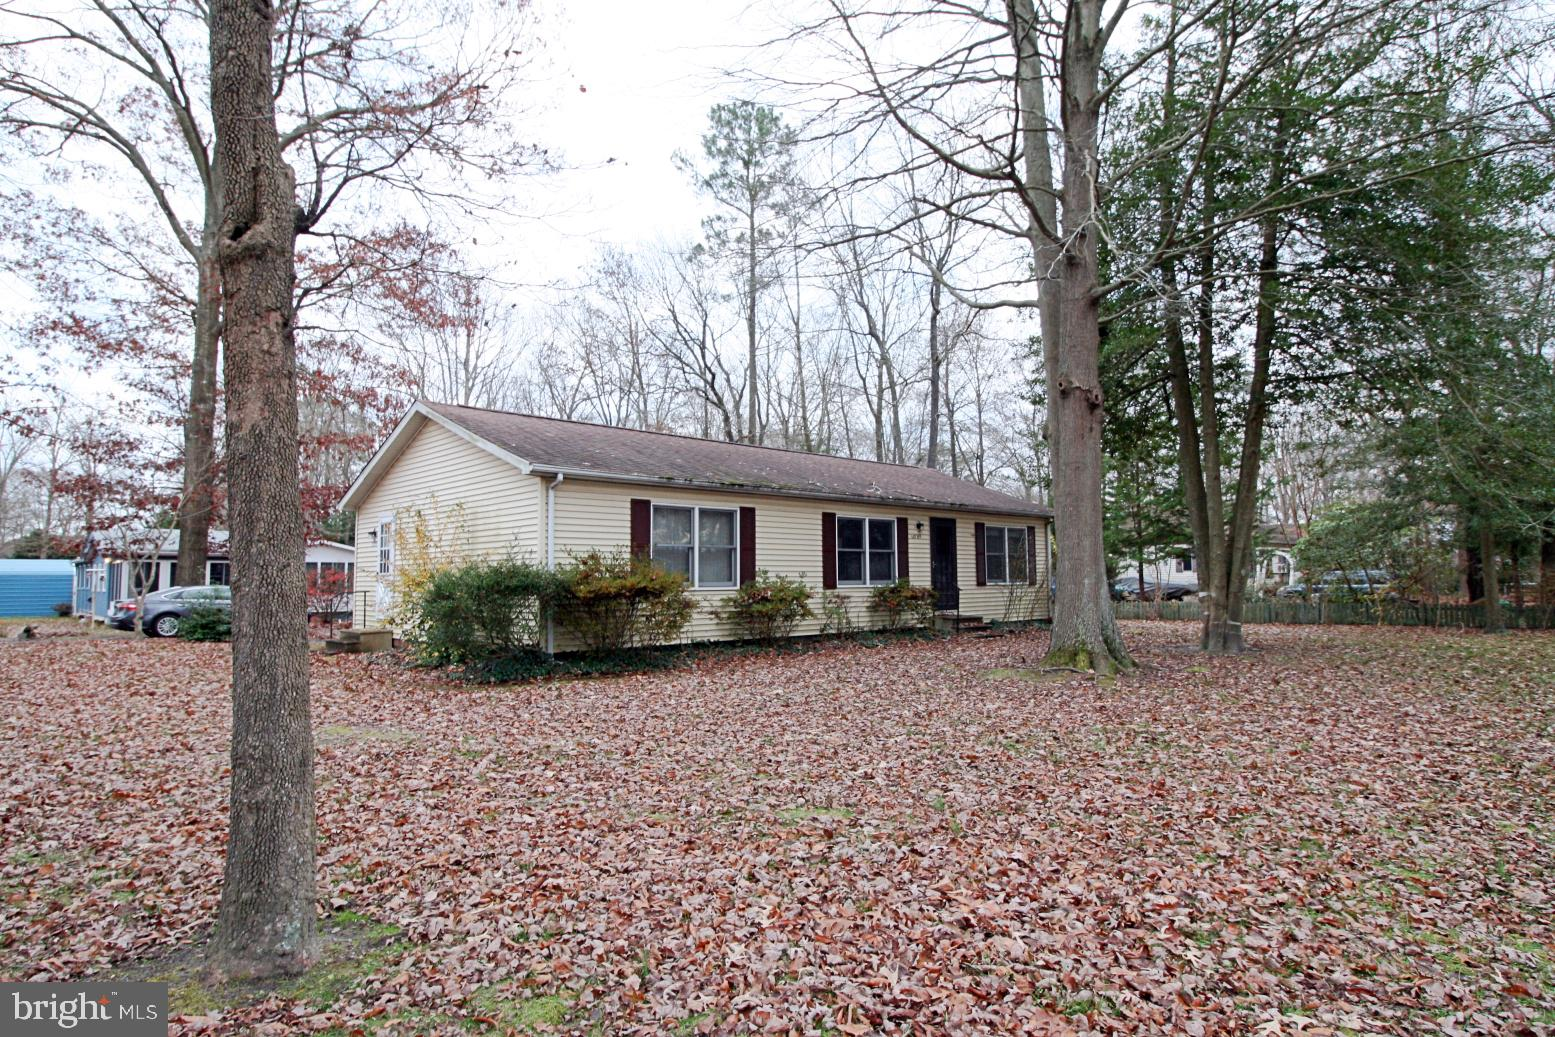 VACATION READY! Close to Oak Orchard. Located just off of Rt 24 in River Village II.  Remodeled Bath